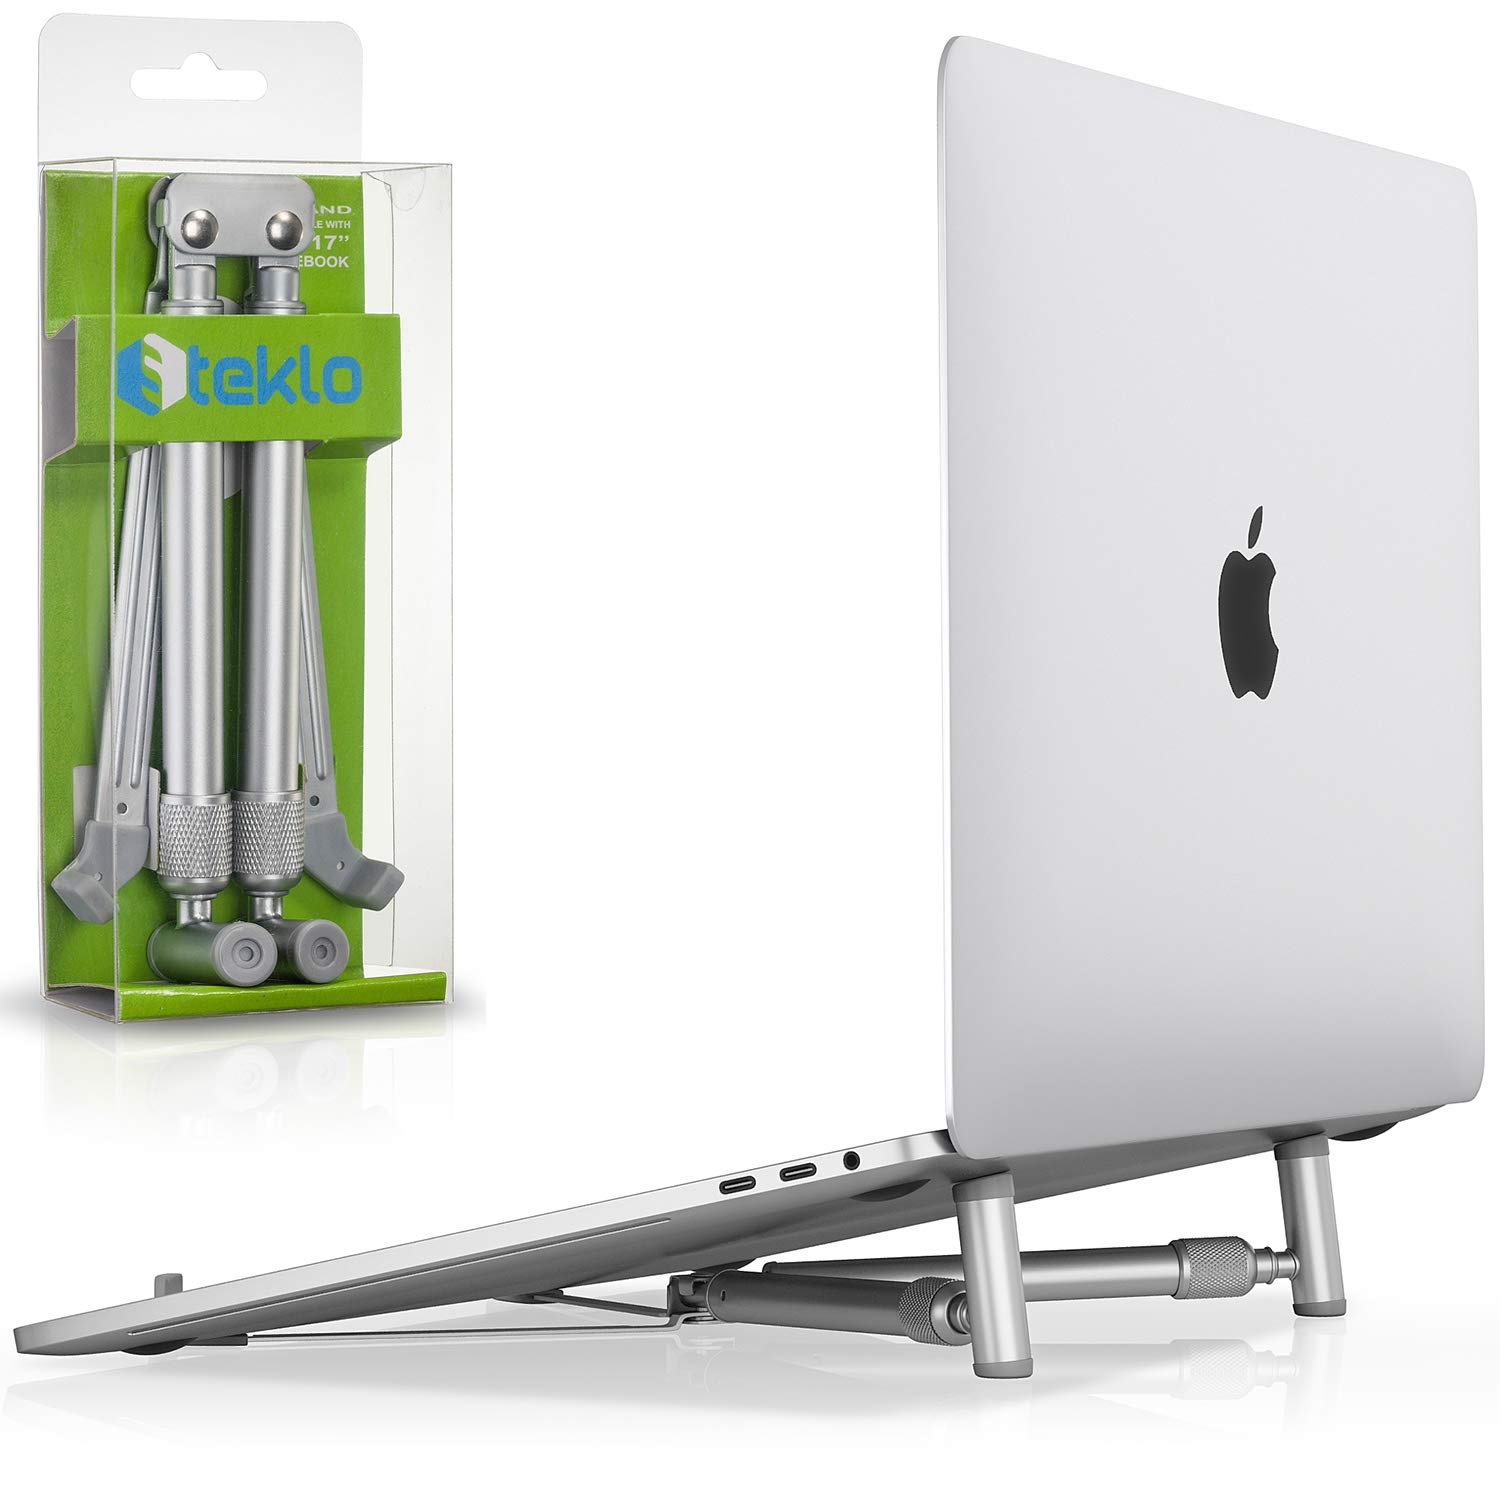 Steklo MacBook Pro Stand - X-Stand Aluminum Laptop Stand for 12 13 15 17 inch - Adjustable Laptop Stand for Desk Portable Foldable Compact Universal Computer Cooling MacBook Stand (New Version 2019) by Steklo